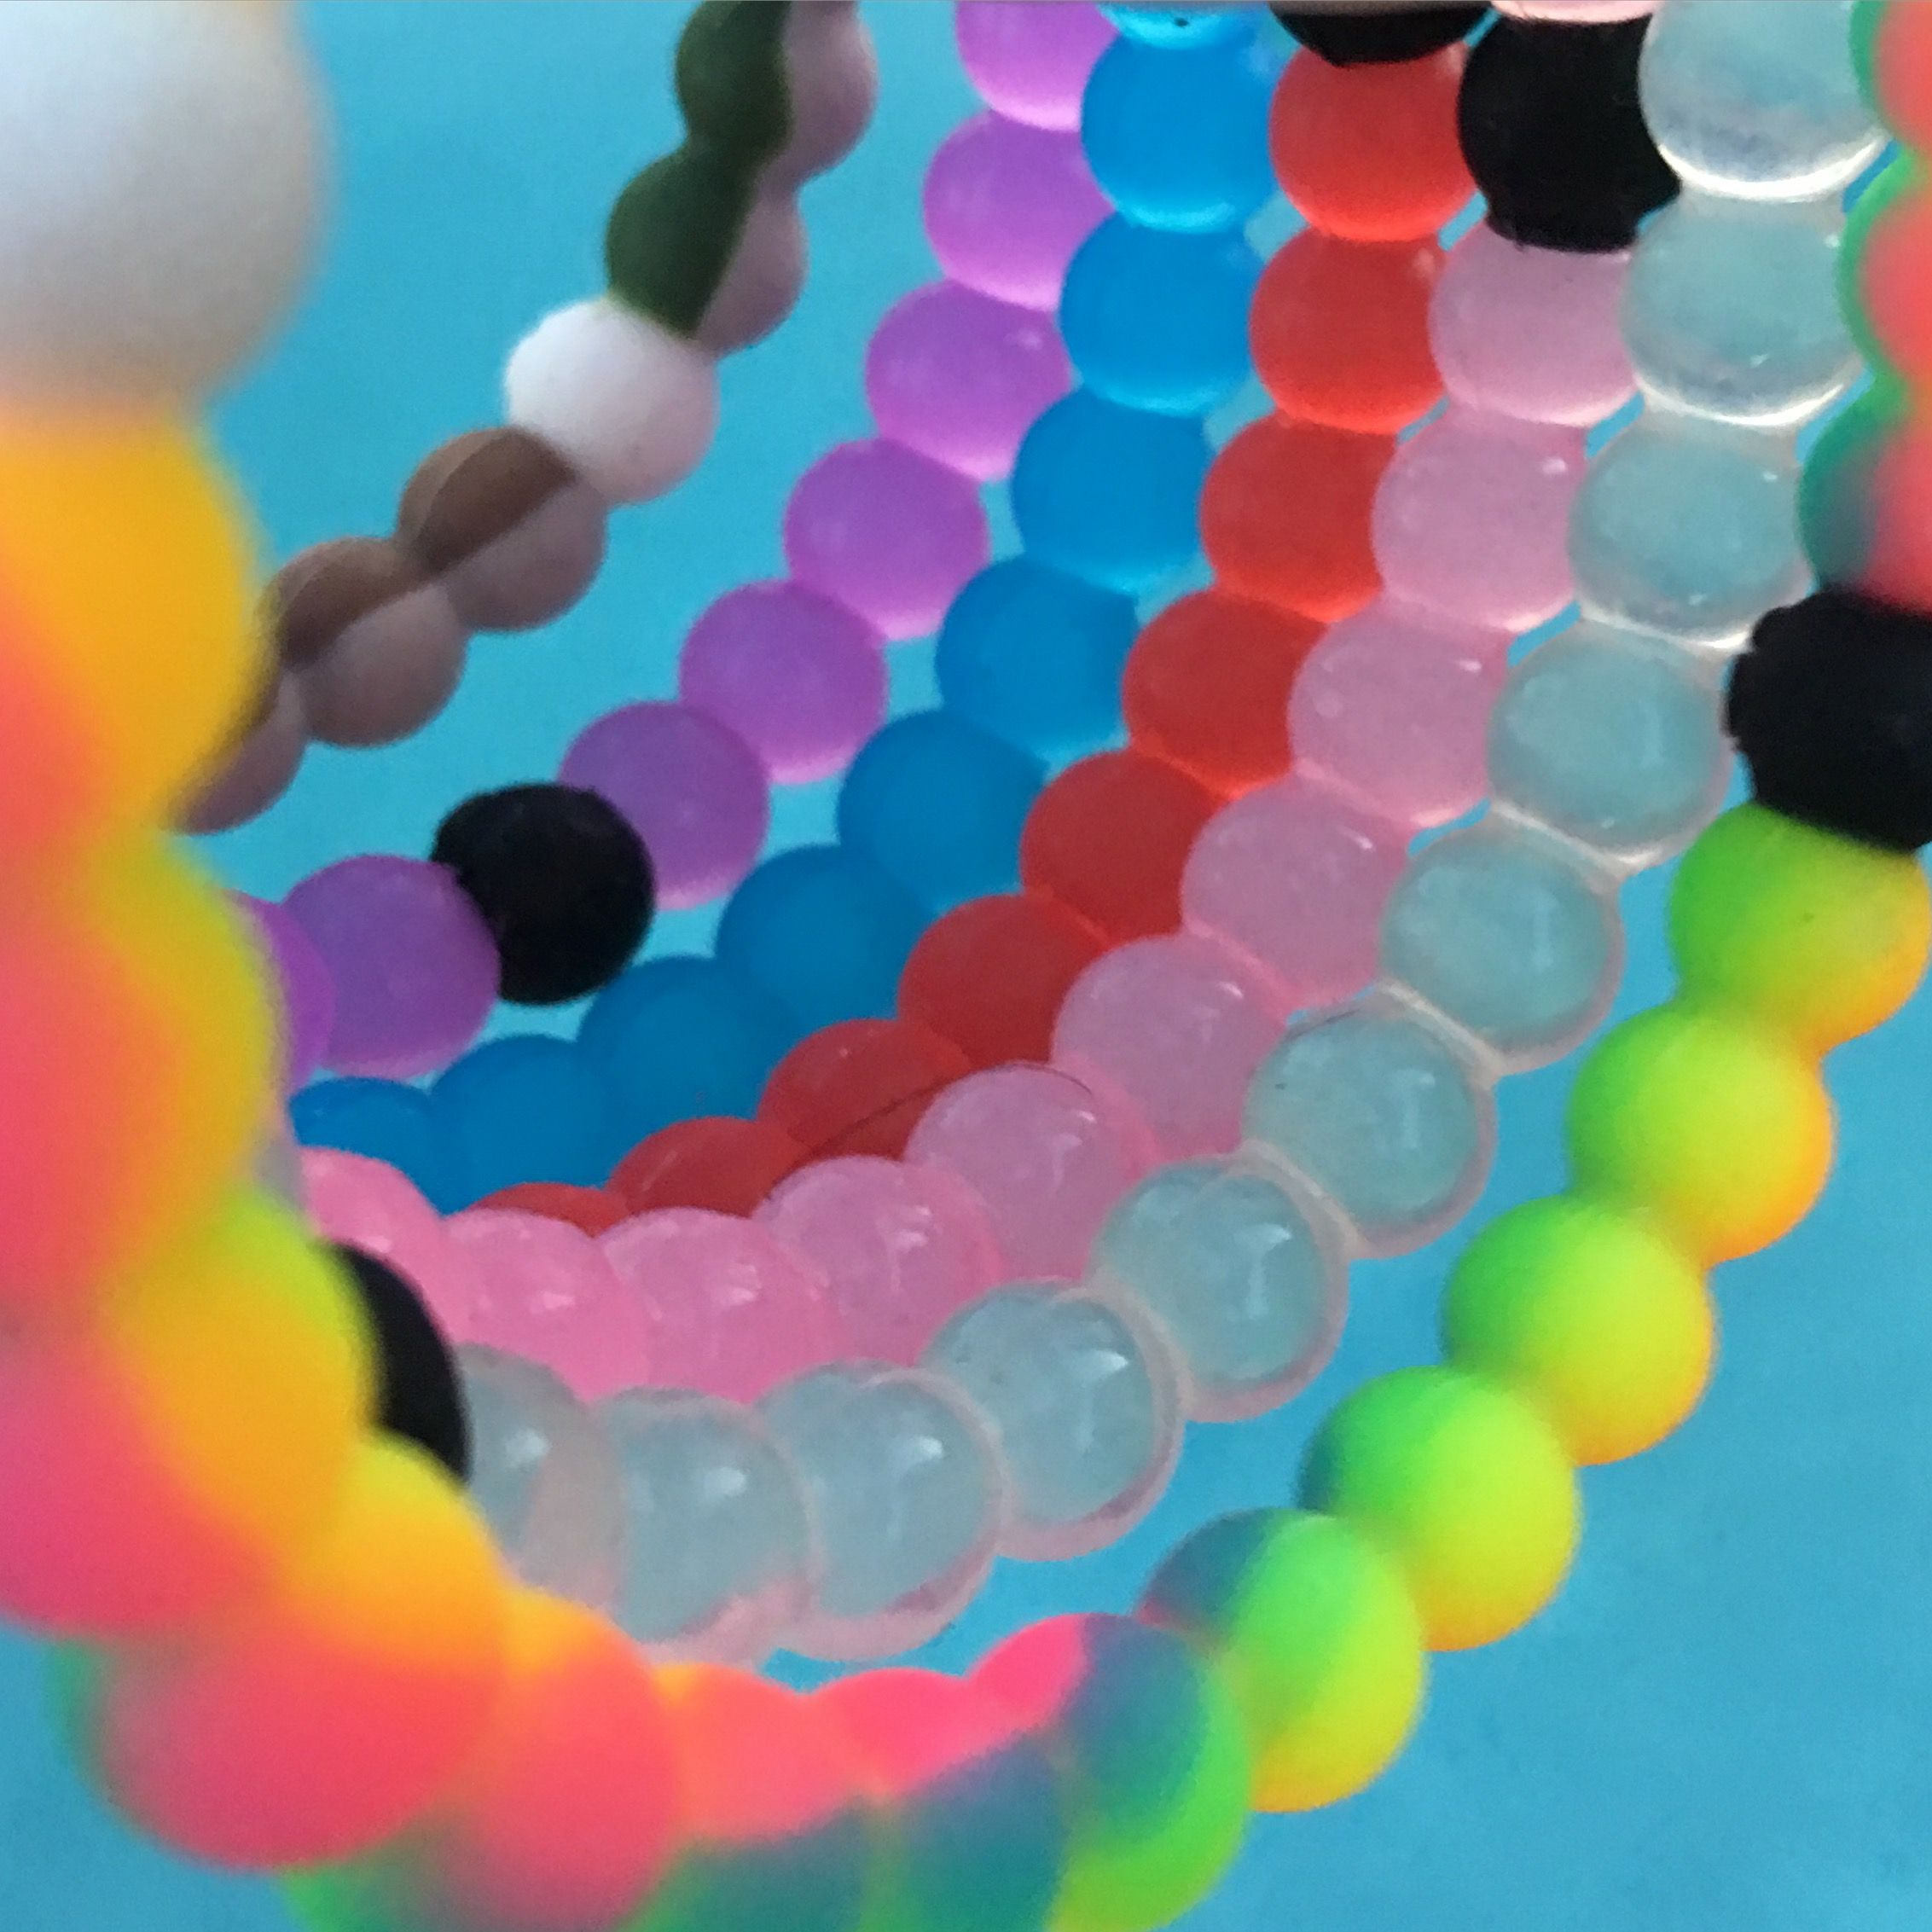 5c6ce2c4bed45 Lokai bracelet stack looking inside over the pool. View from within ...